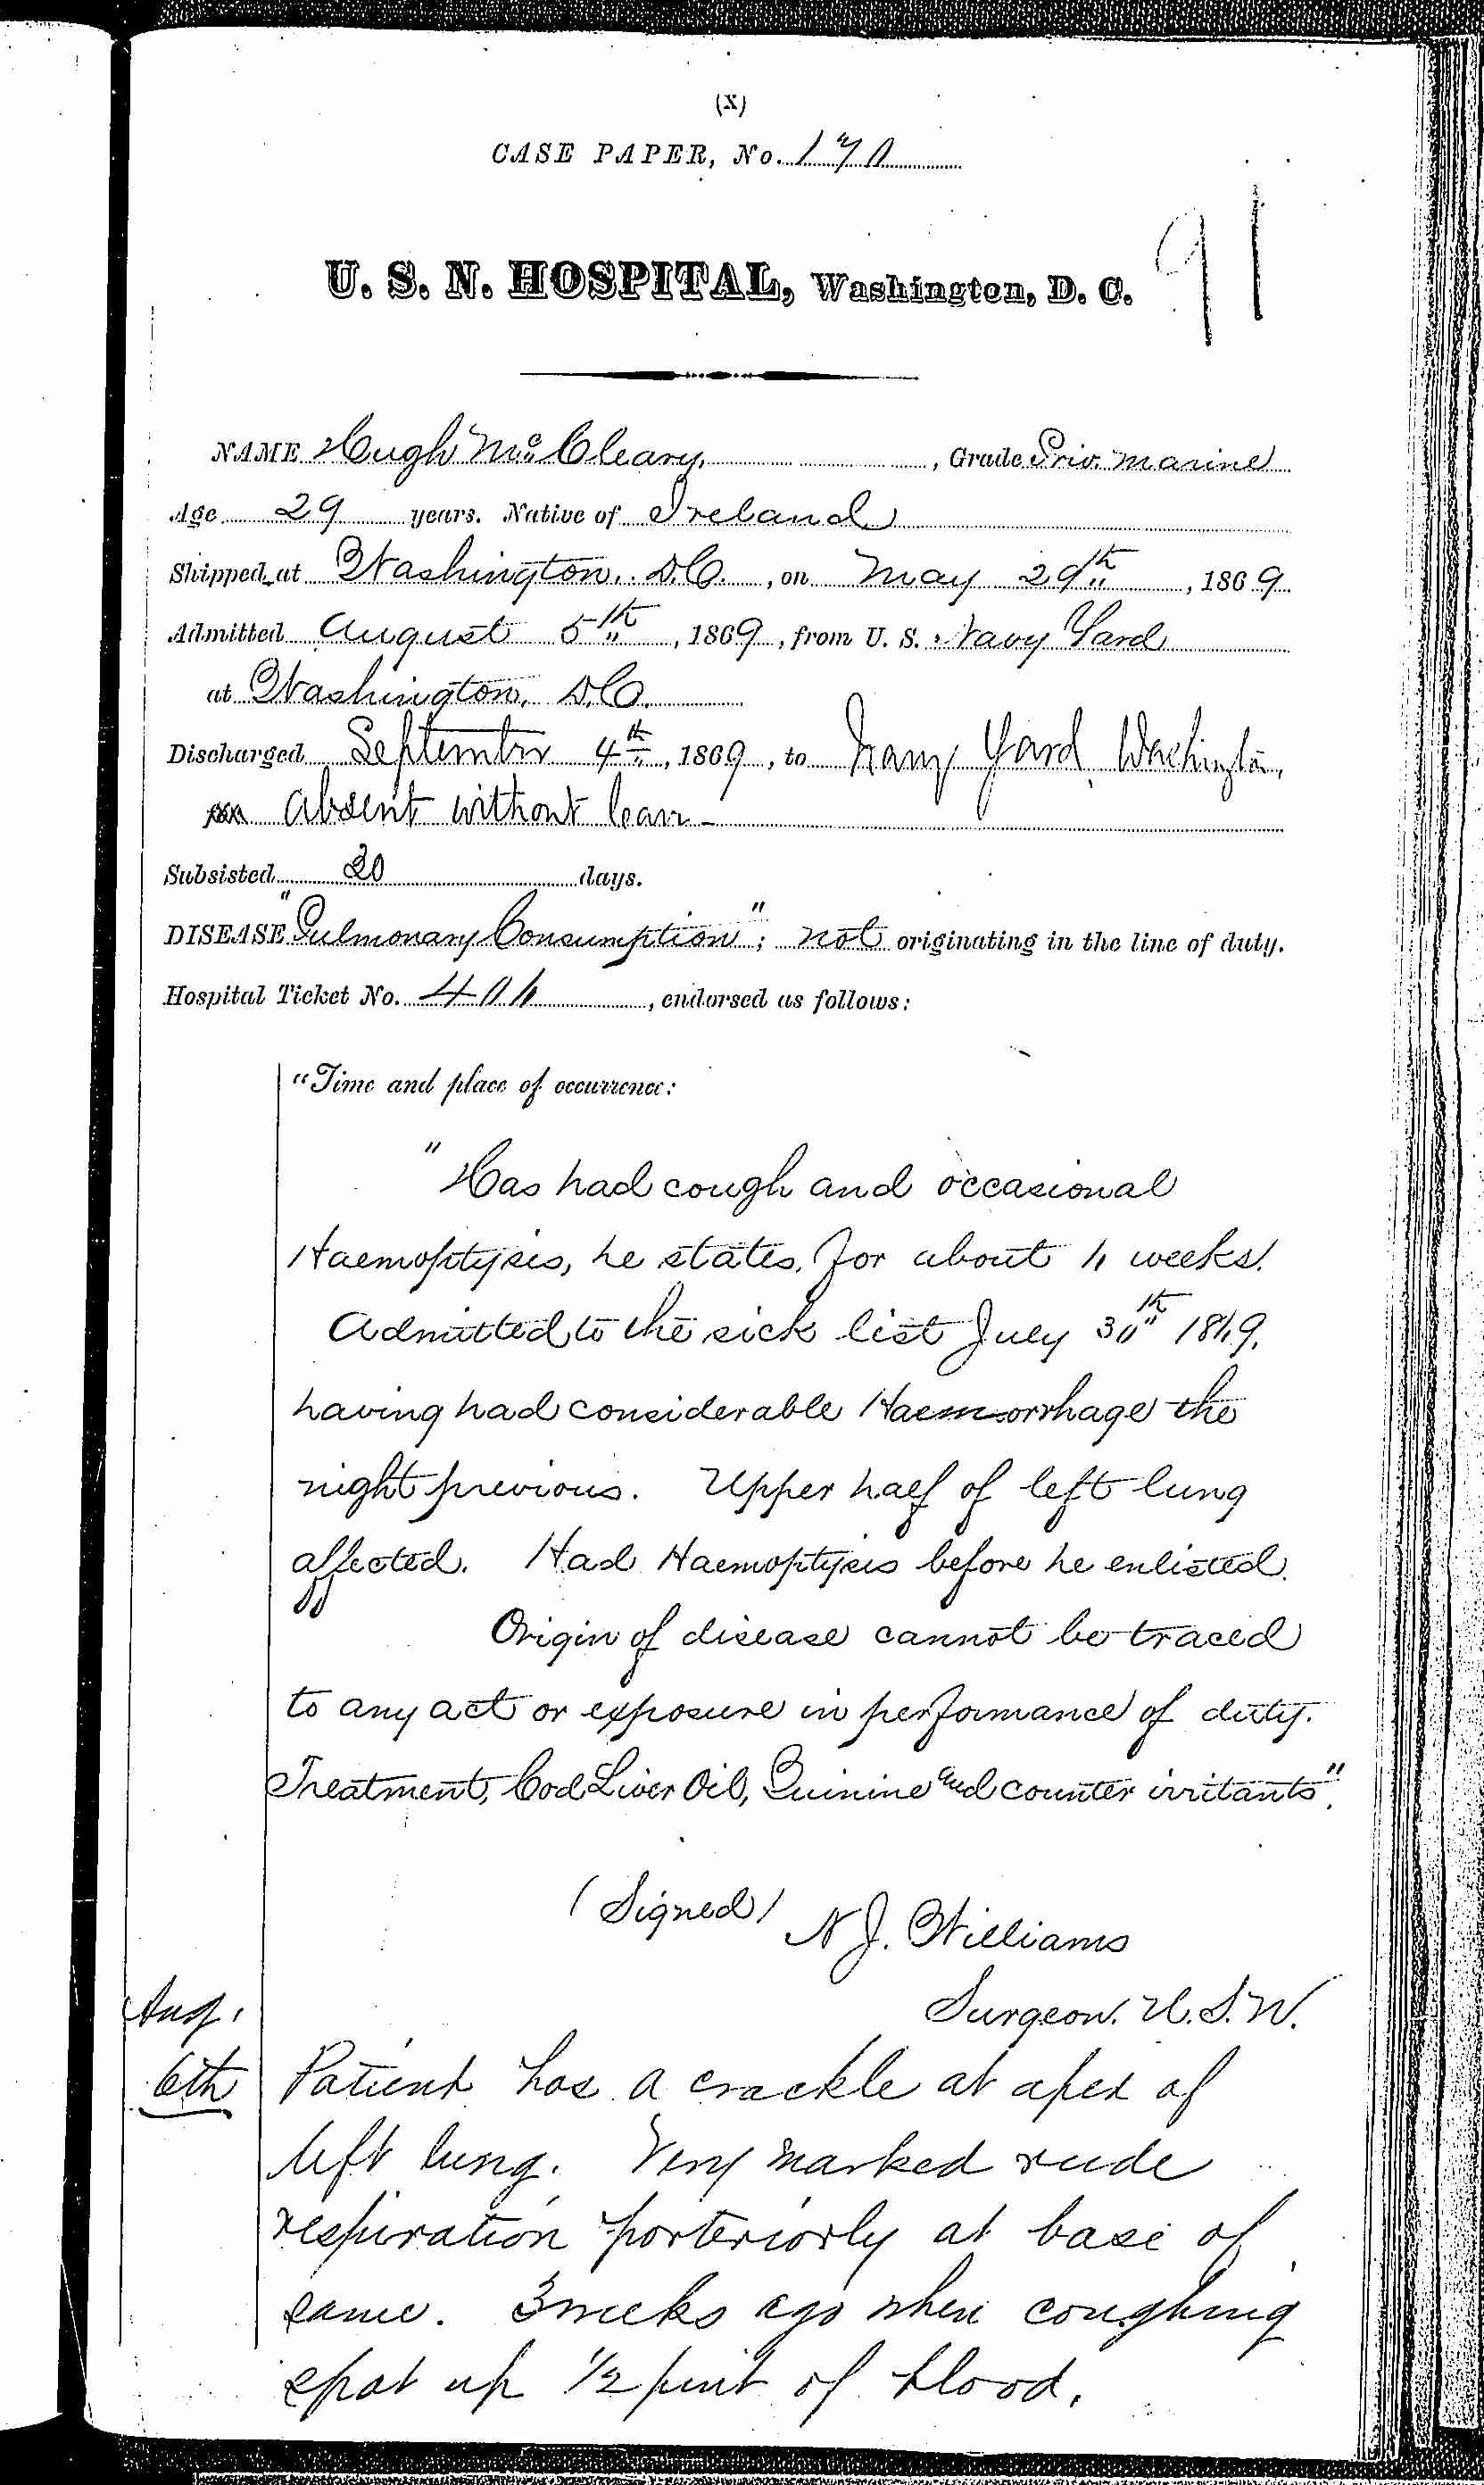 Entry for Hugh McCleary (page 1 of 4) in the log Hospital Tickets and Case Papers - Naval Hospital - Washington, D.C. - 1868-69